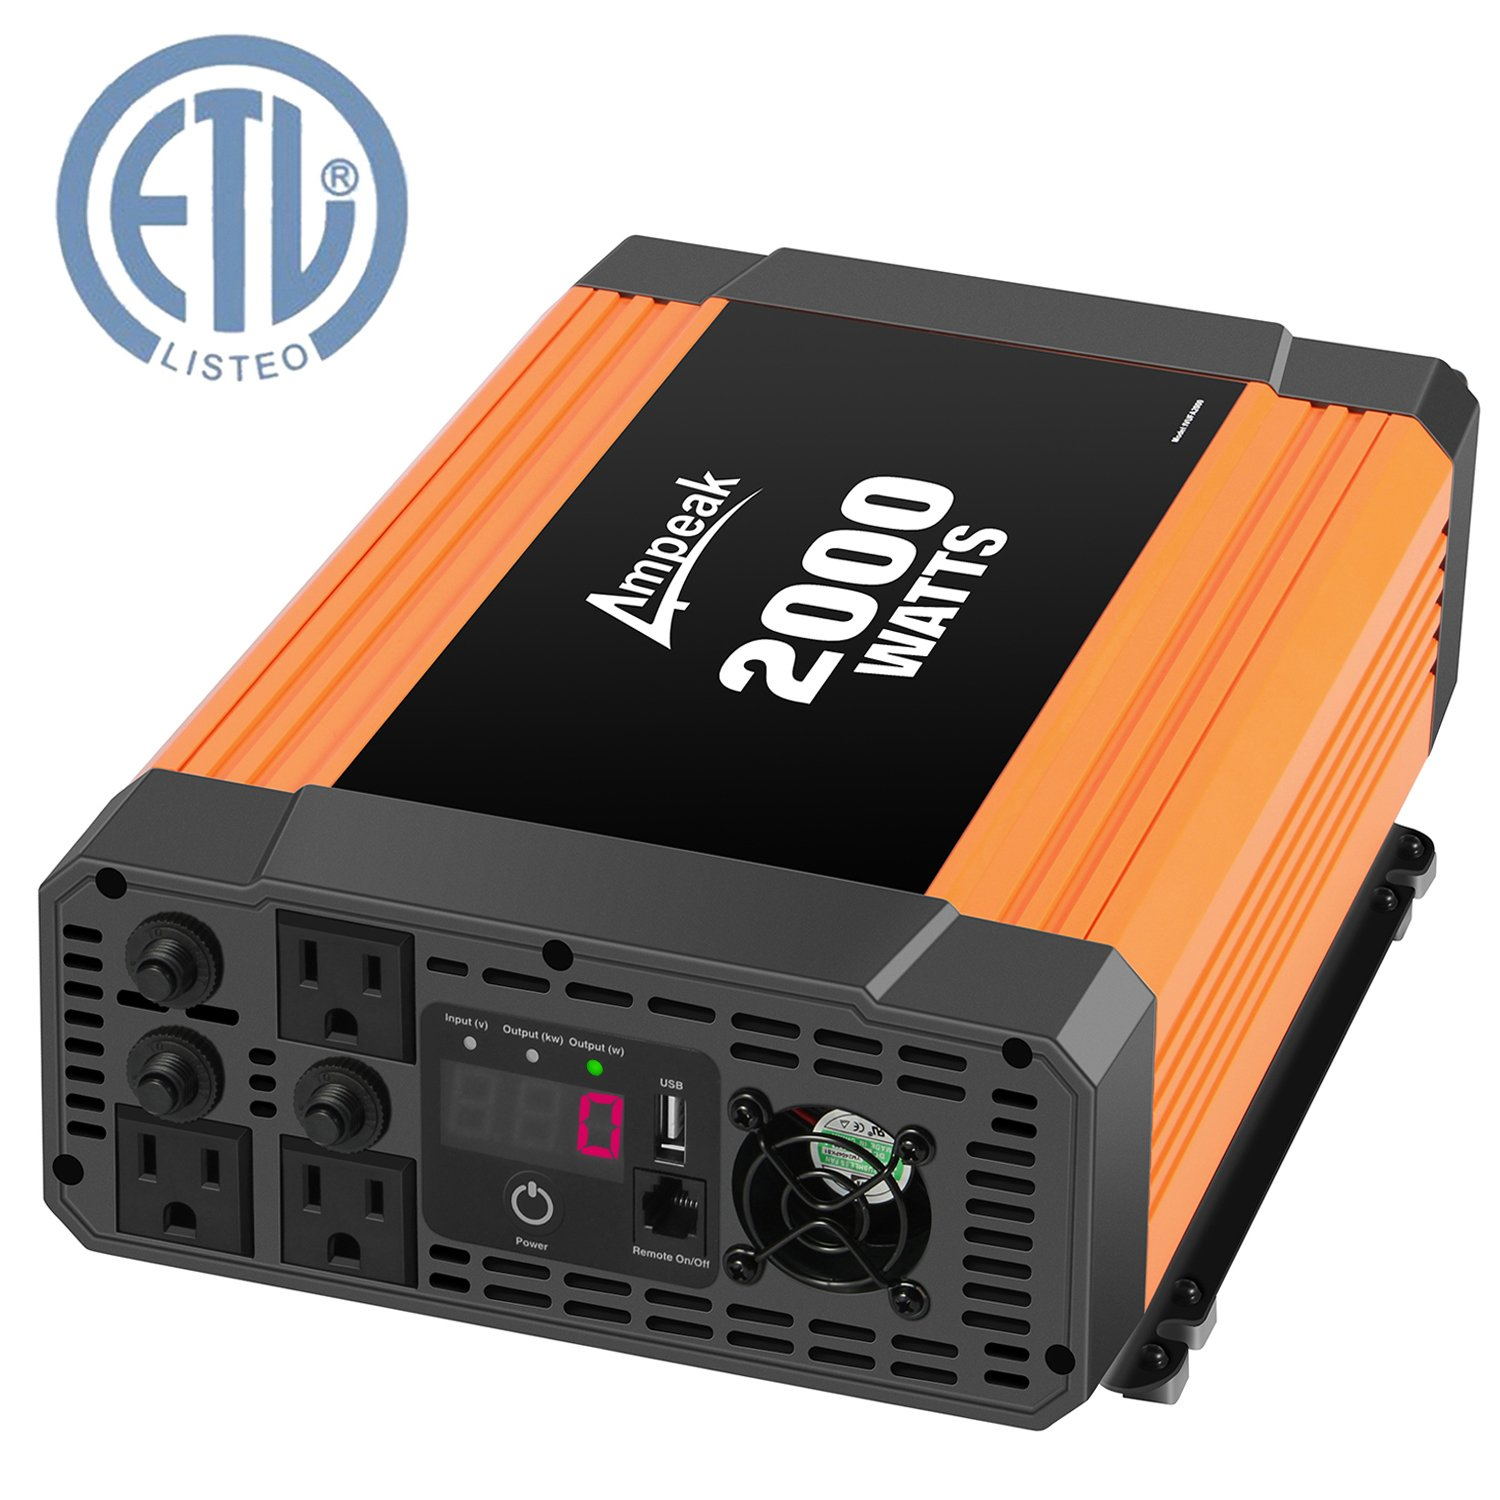 Ampeak 2000W Power Inverter 12V DC to 110V AC Modified Sine Wave Inverter with 3 AC Outlets 2.1A USB Truck/RV/Car Inverter